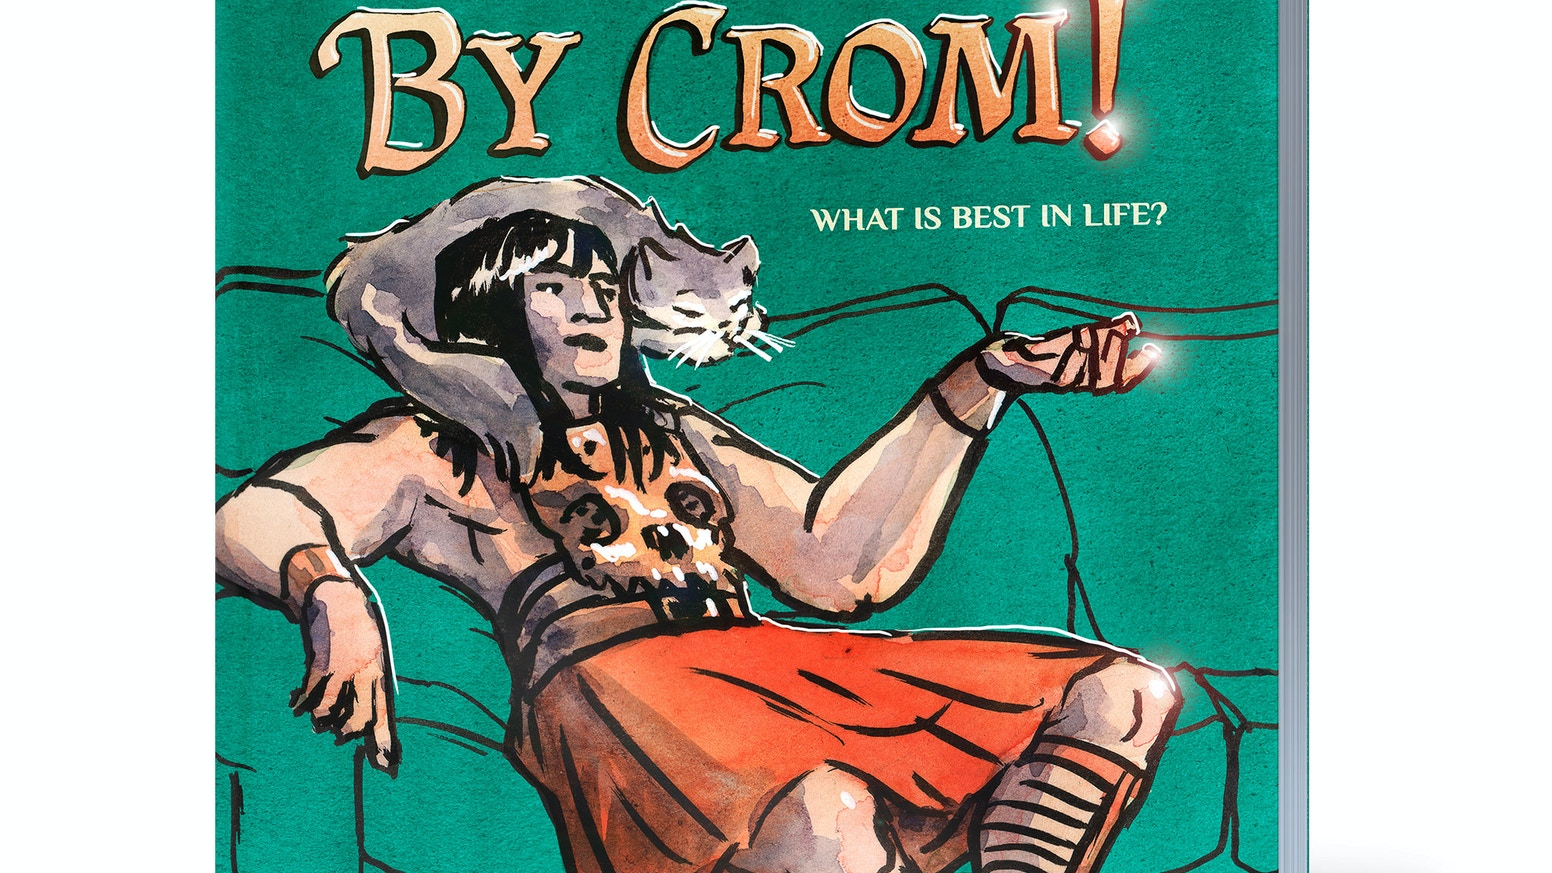 I'm collecting all of my webcomic, By Crom!, into a single cromulent volume, full of barbaric advice and guidance for modern life.